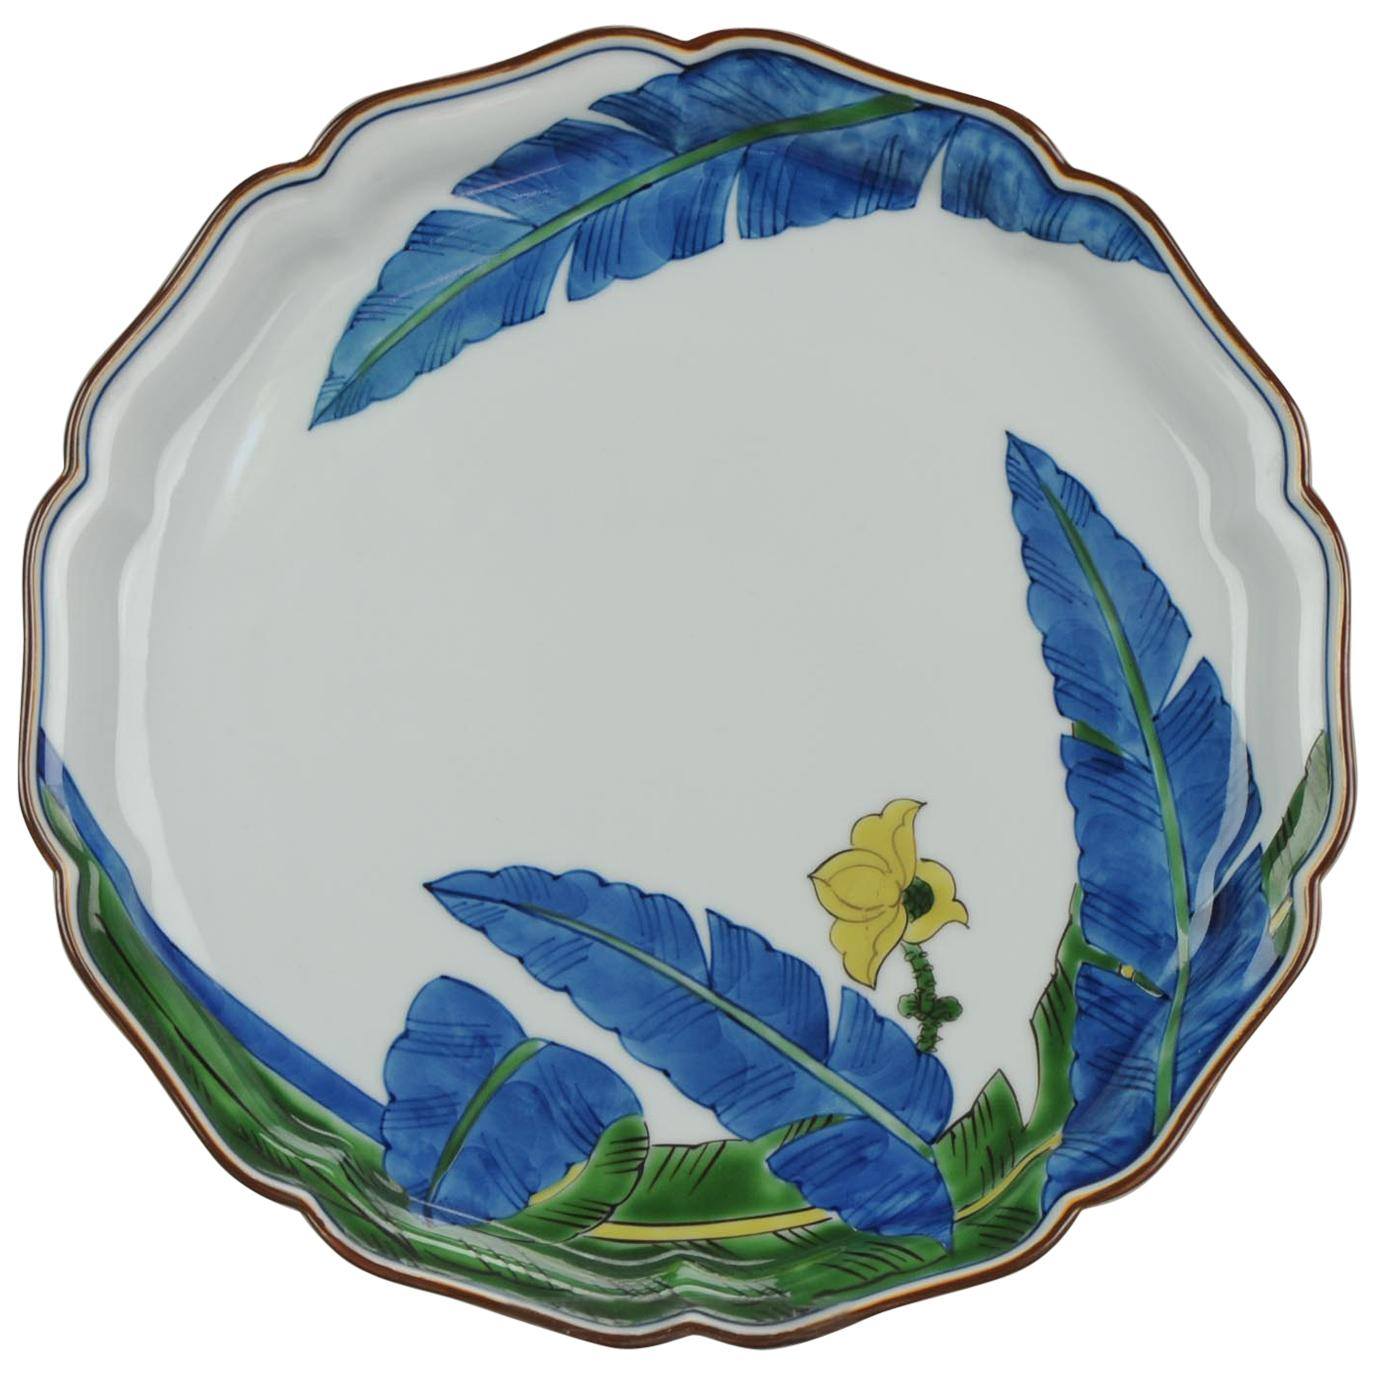 Perfect 20th Century Japanese Porcelain Charger Flower and Leaves Marked